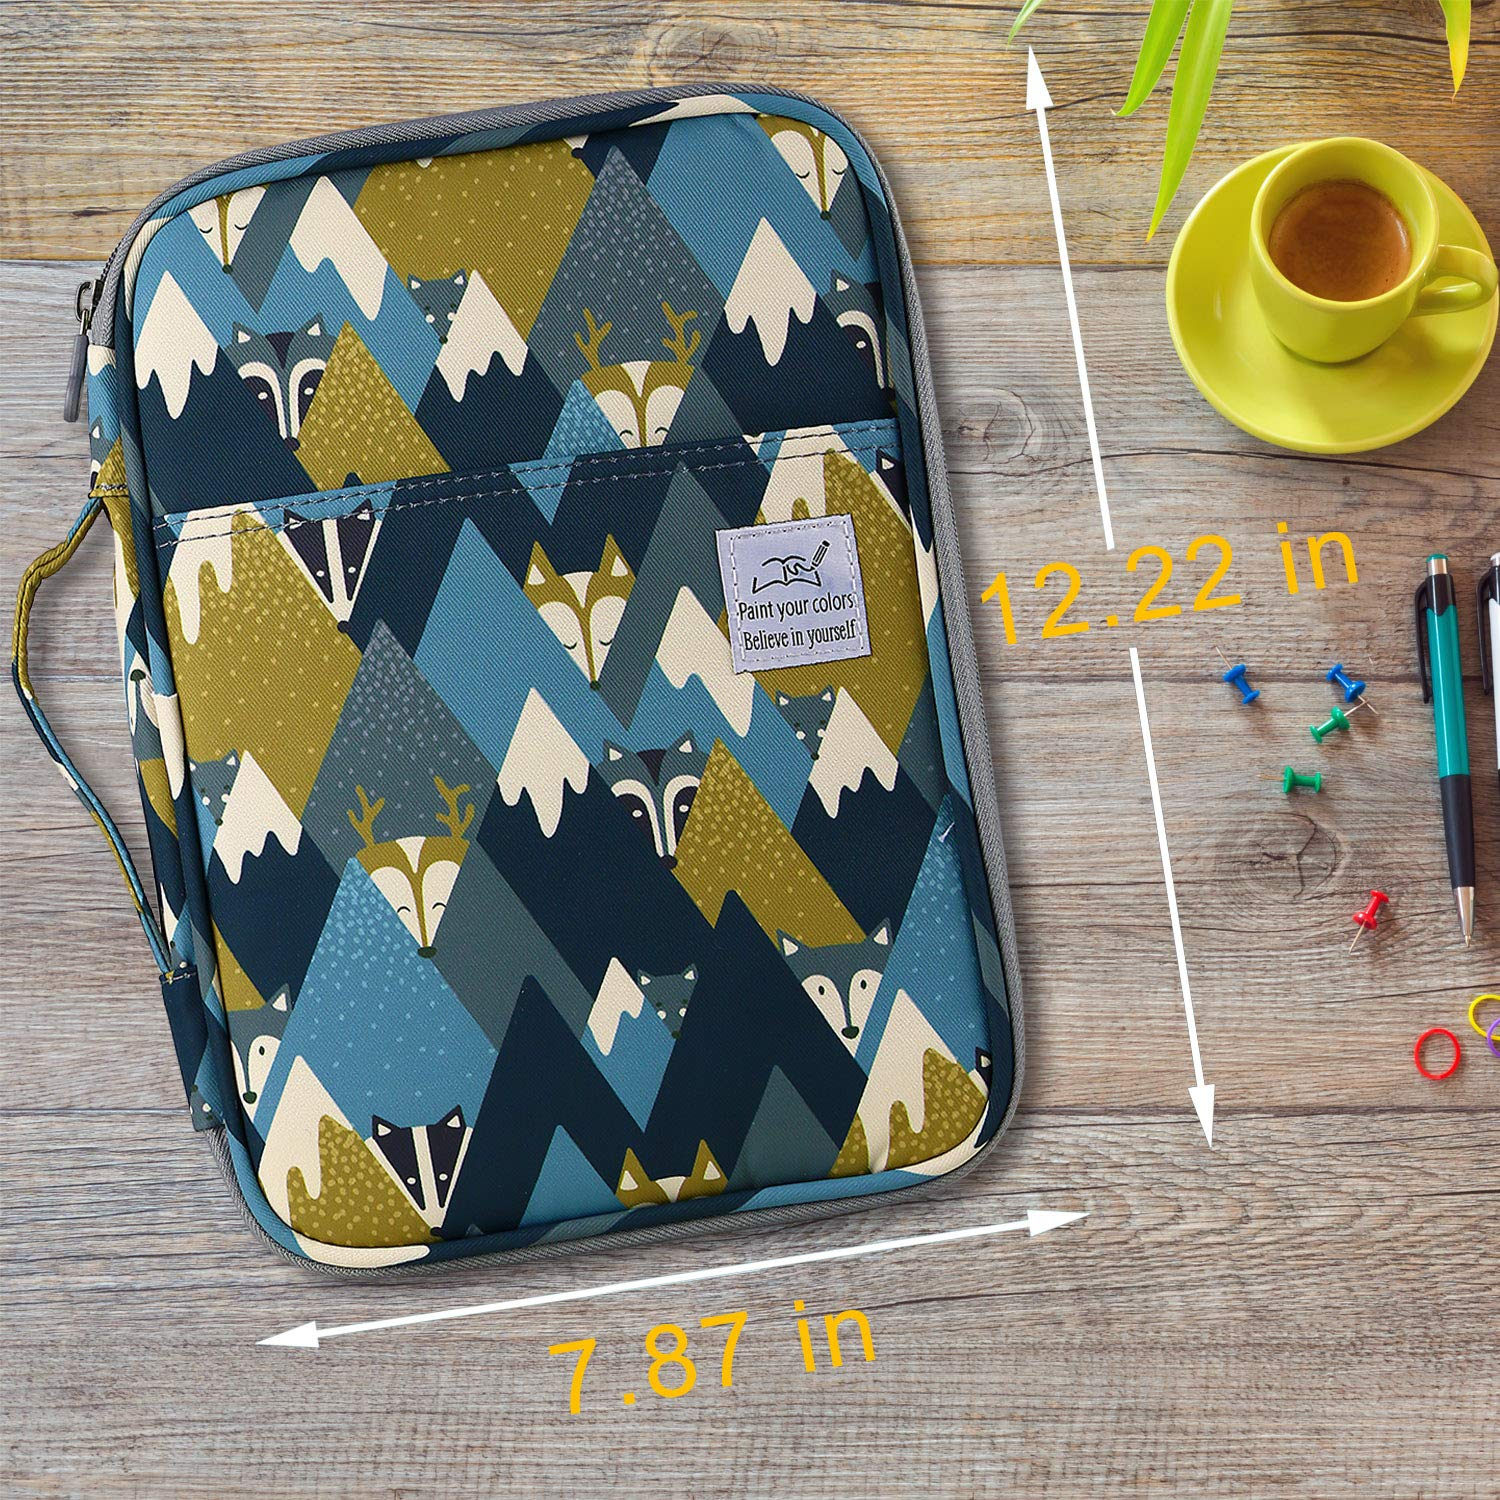 Gel Pens for Student /& Artist Big-Faced Cat Large Capacity Pencil Holder Pen Organizer Bag with Zipper for Prismacolor Watercolor Coloring Pencils YOUSHARES 96 Slots Colored Pencil Case